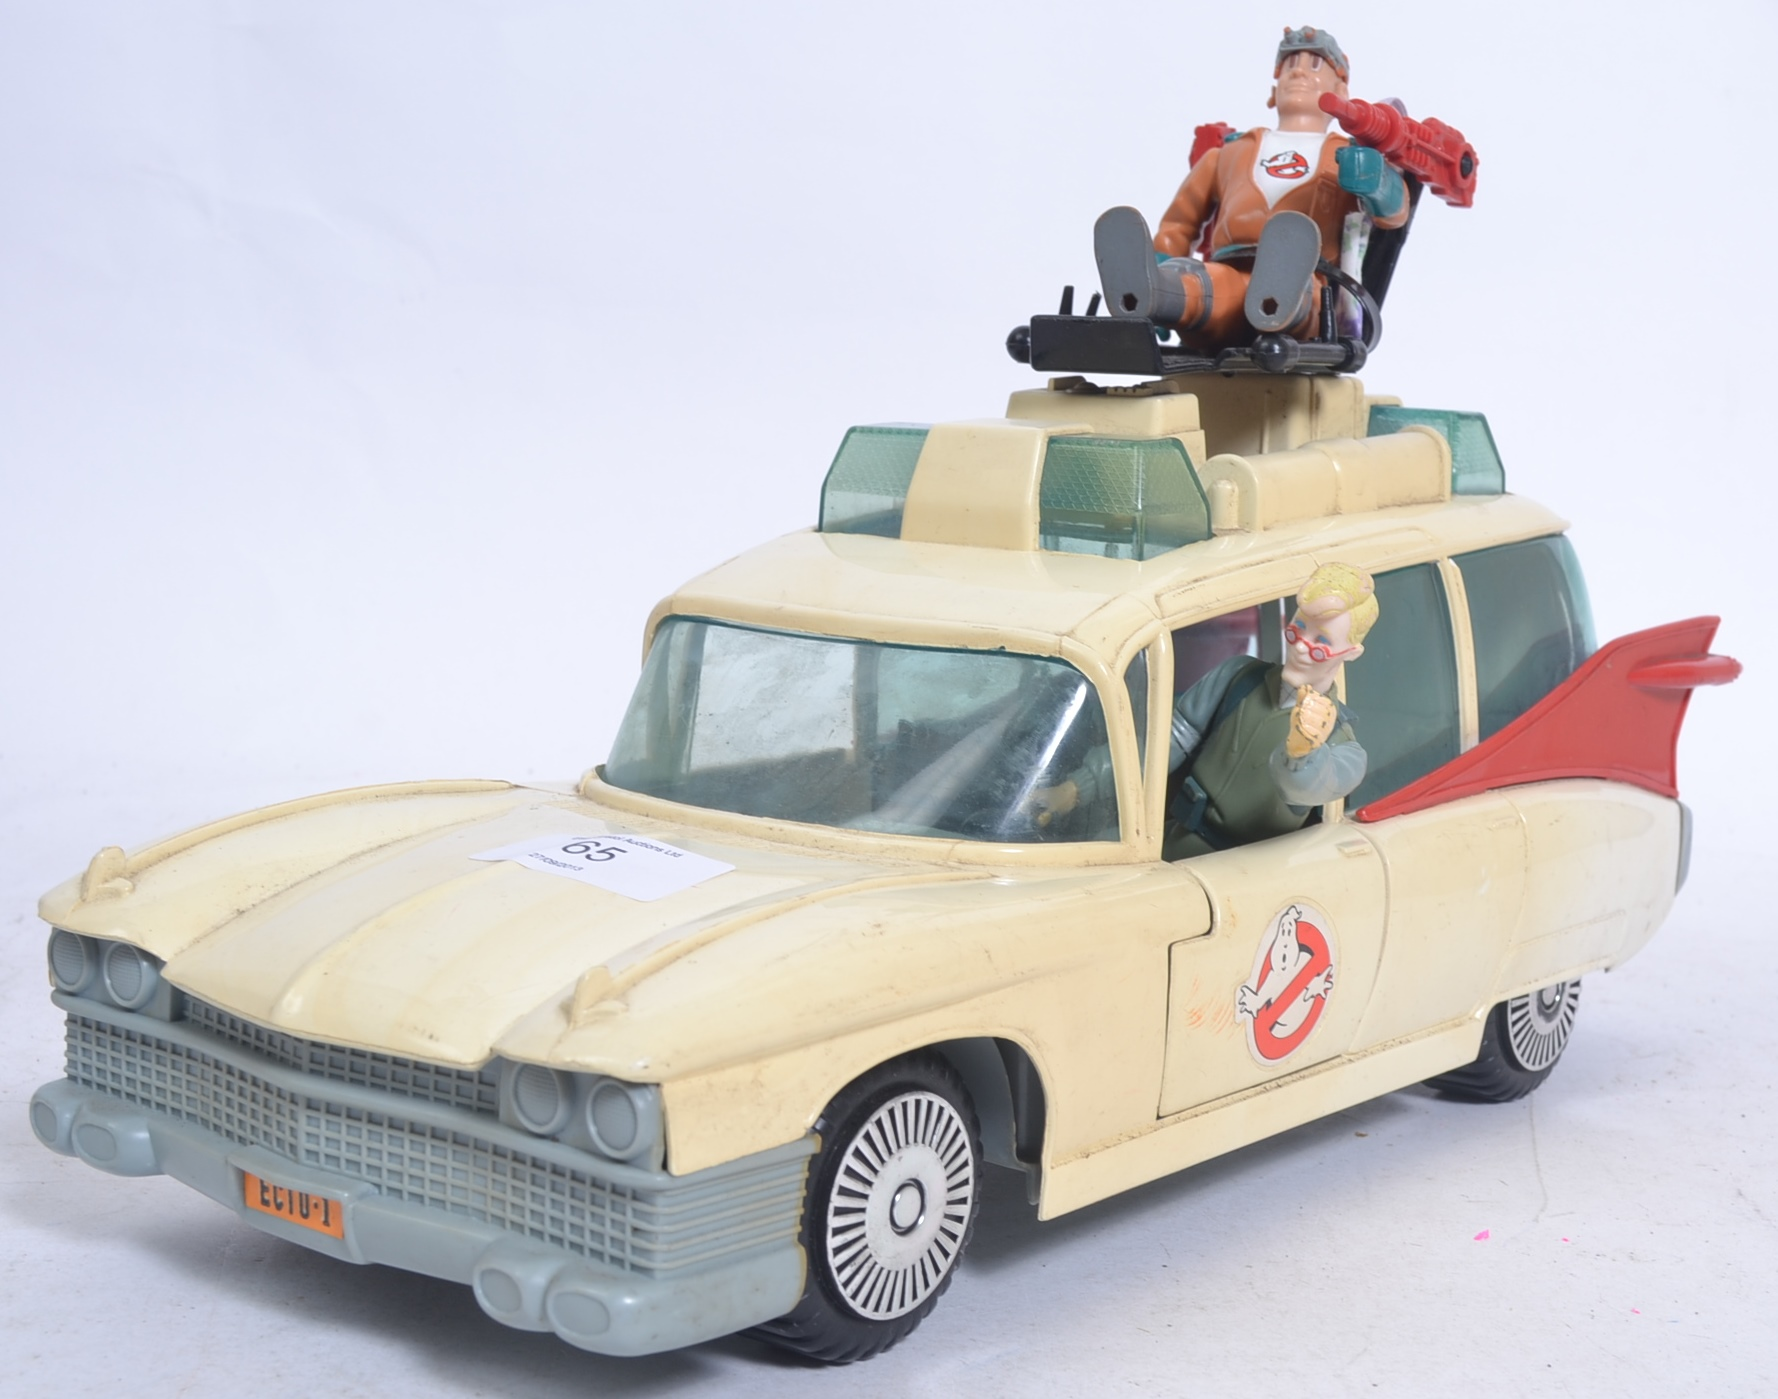 KENNER: An original The Real Ghostbusters Kenner Ecto 1 car, along with two action figures. The